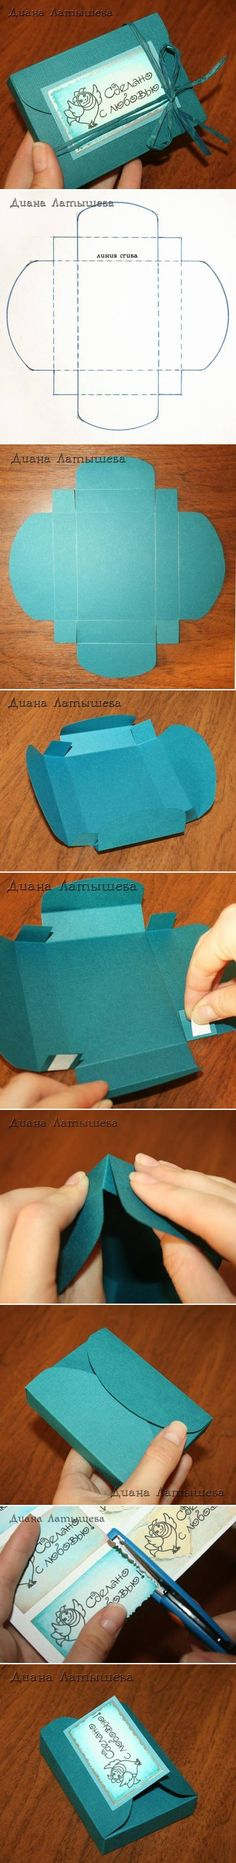 Ideas diy box packaging tutorials paper gifts for 2019 Diy Gift Box, Diy Gifts, Gift Boxes, Paper Gifts, Diy Paper, Origami Envelope, Envelope Box, Origami Box, Box Packaging